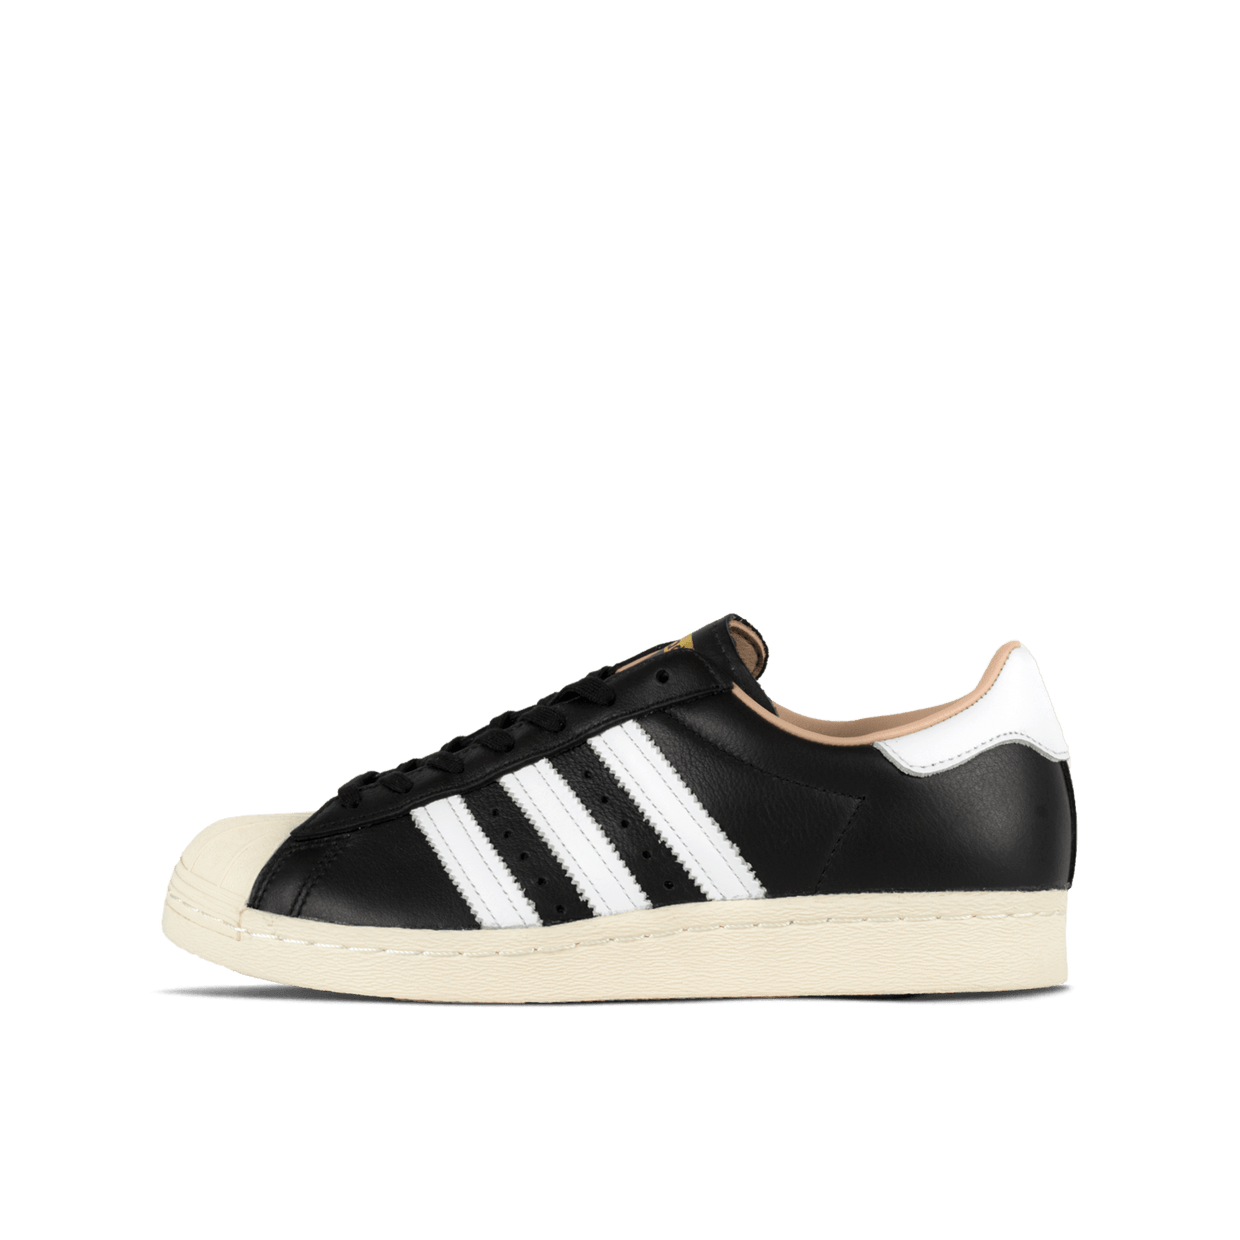 Superstar 80s W - Black/White